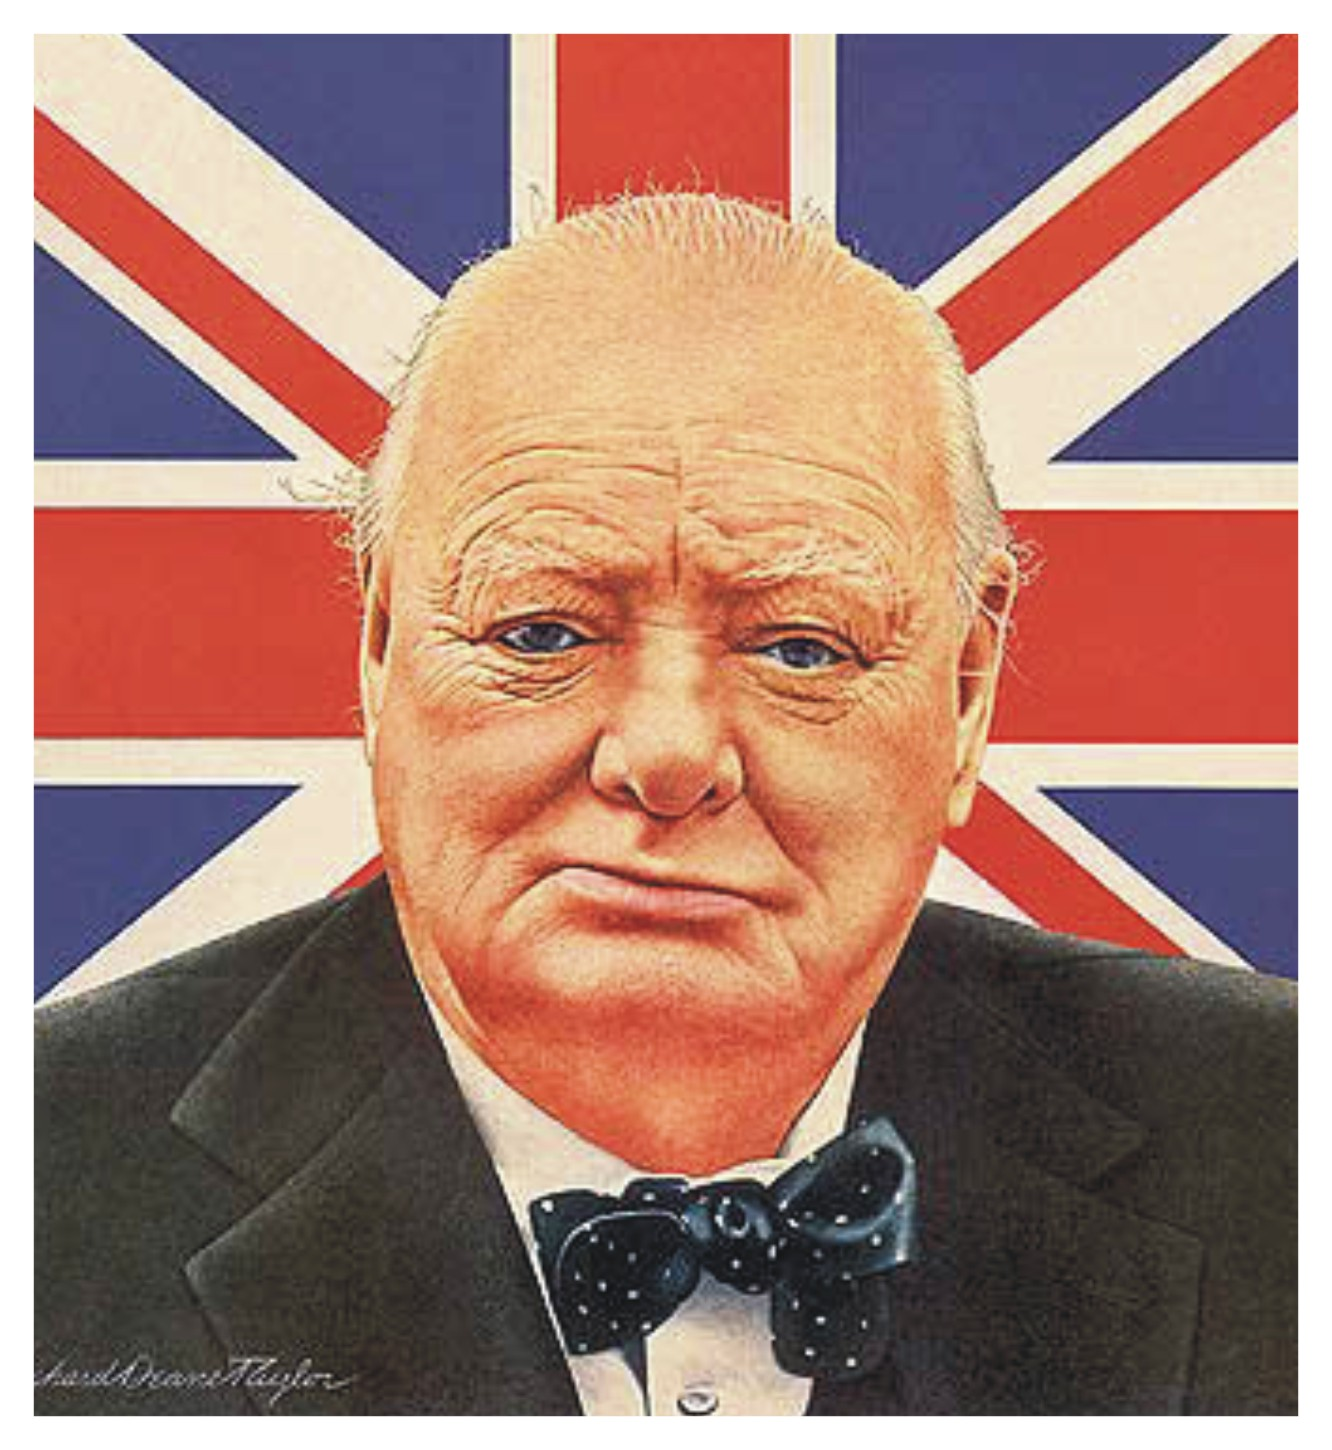 Ww2 Quotes: Quotes By Winston Churchill Wwii. QuotesGram